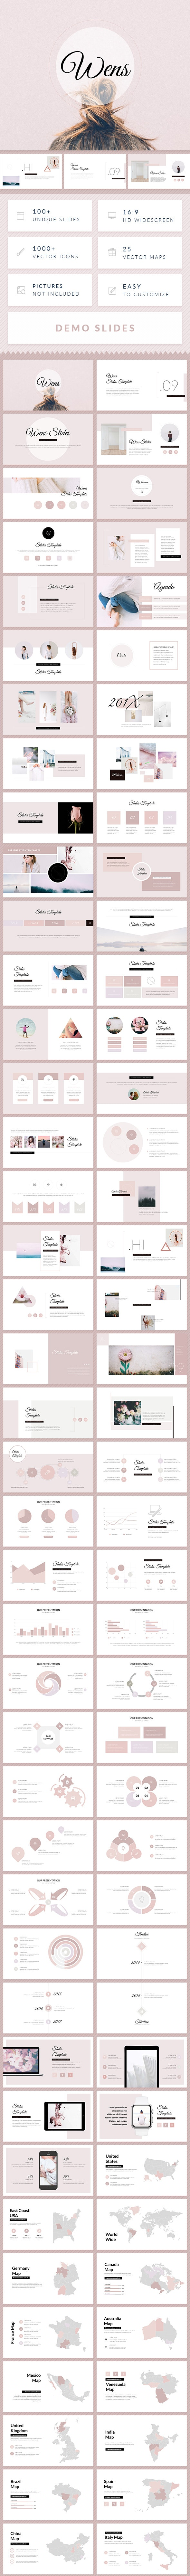 Wens - Minimal Simple Google Slides Template - Google Slides Presentation Templates